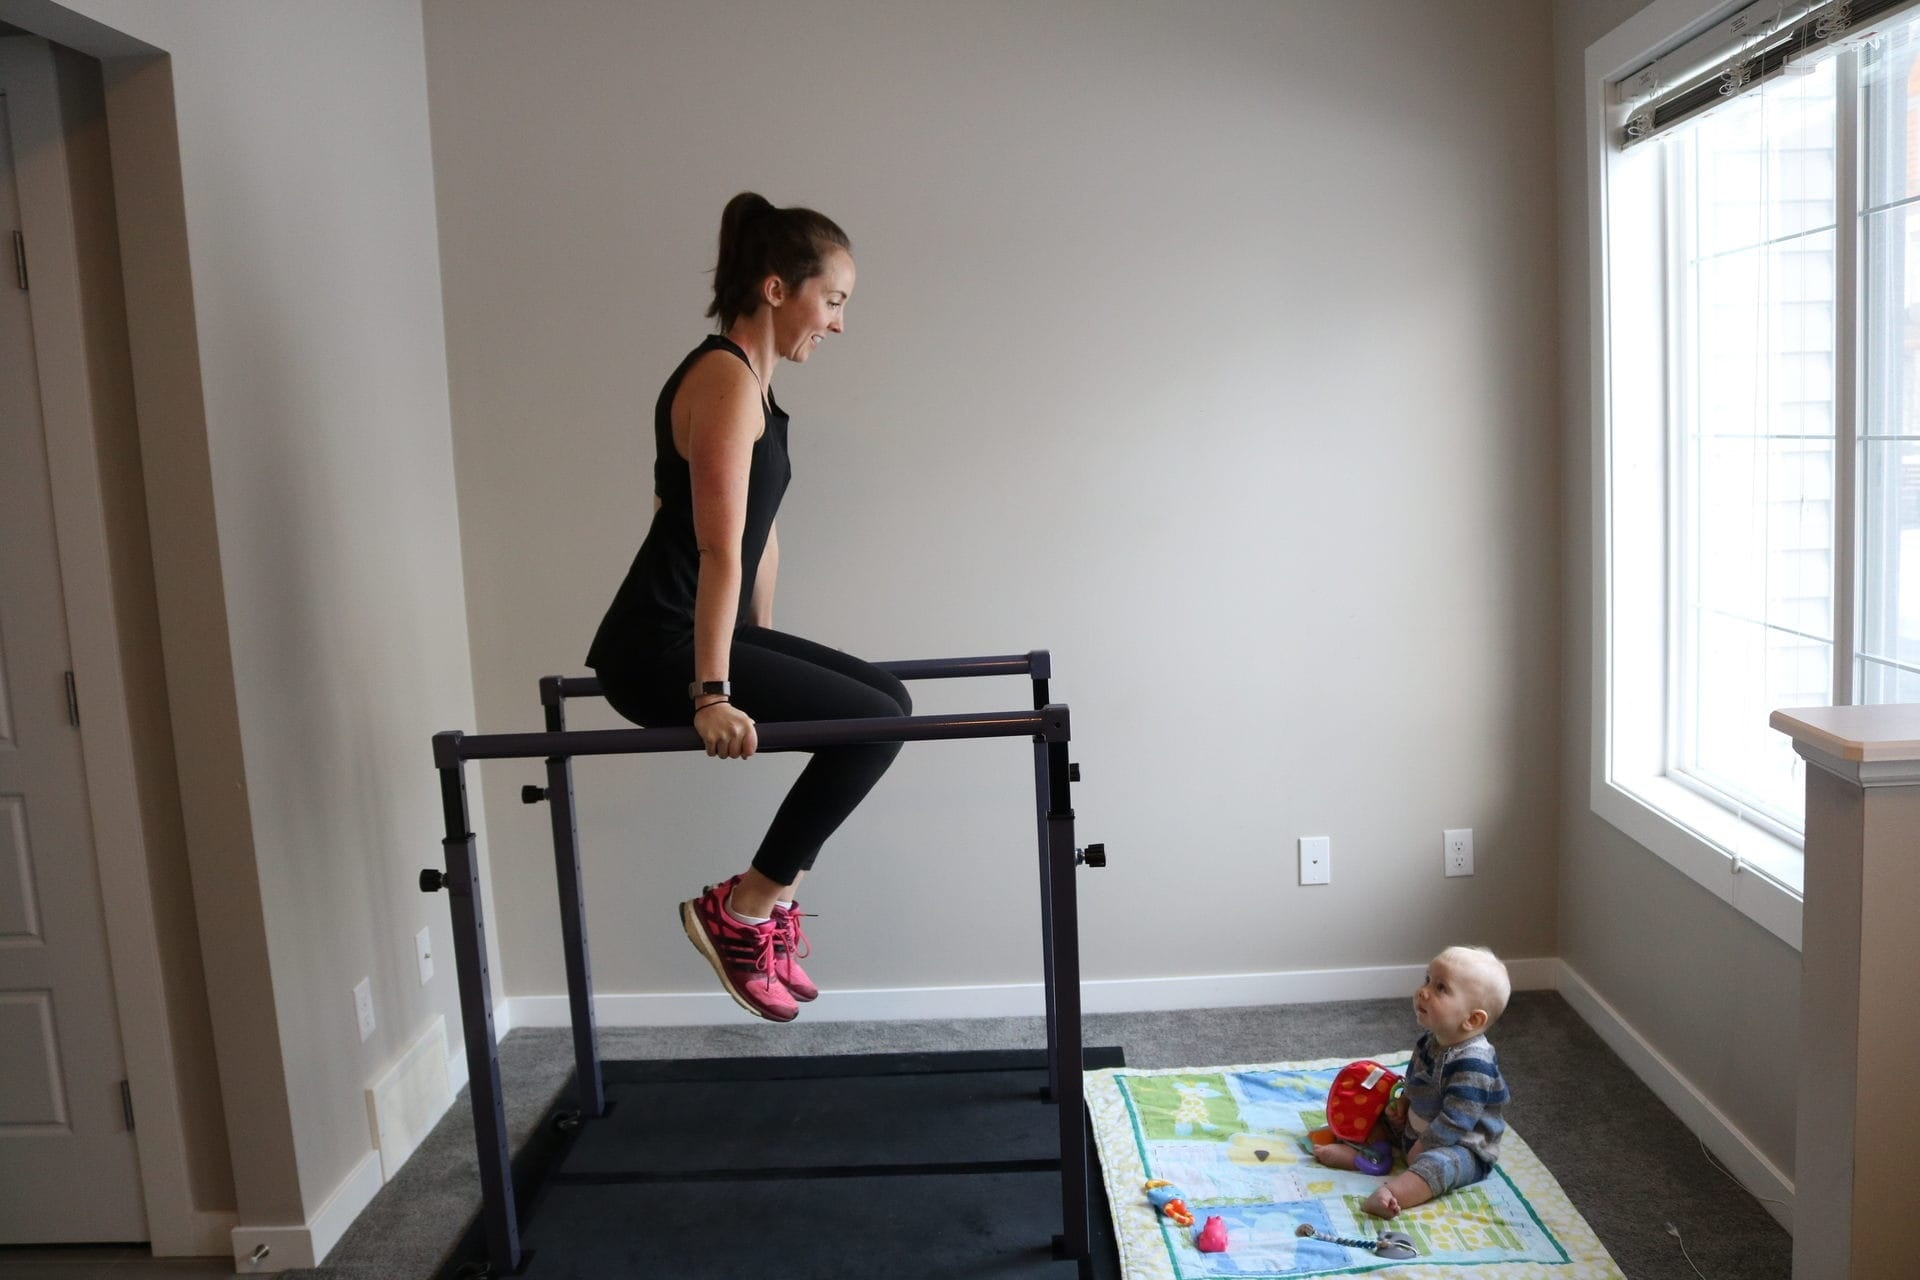 The Evolution Home Gym allows you to workout effectively at home